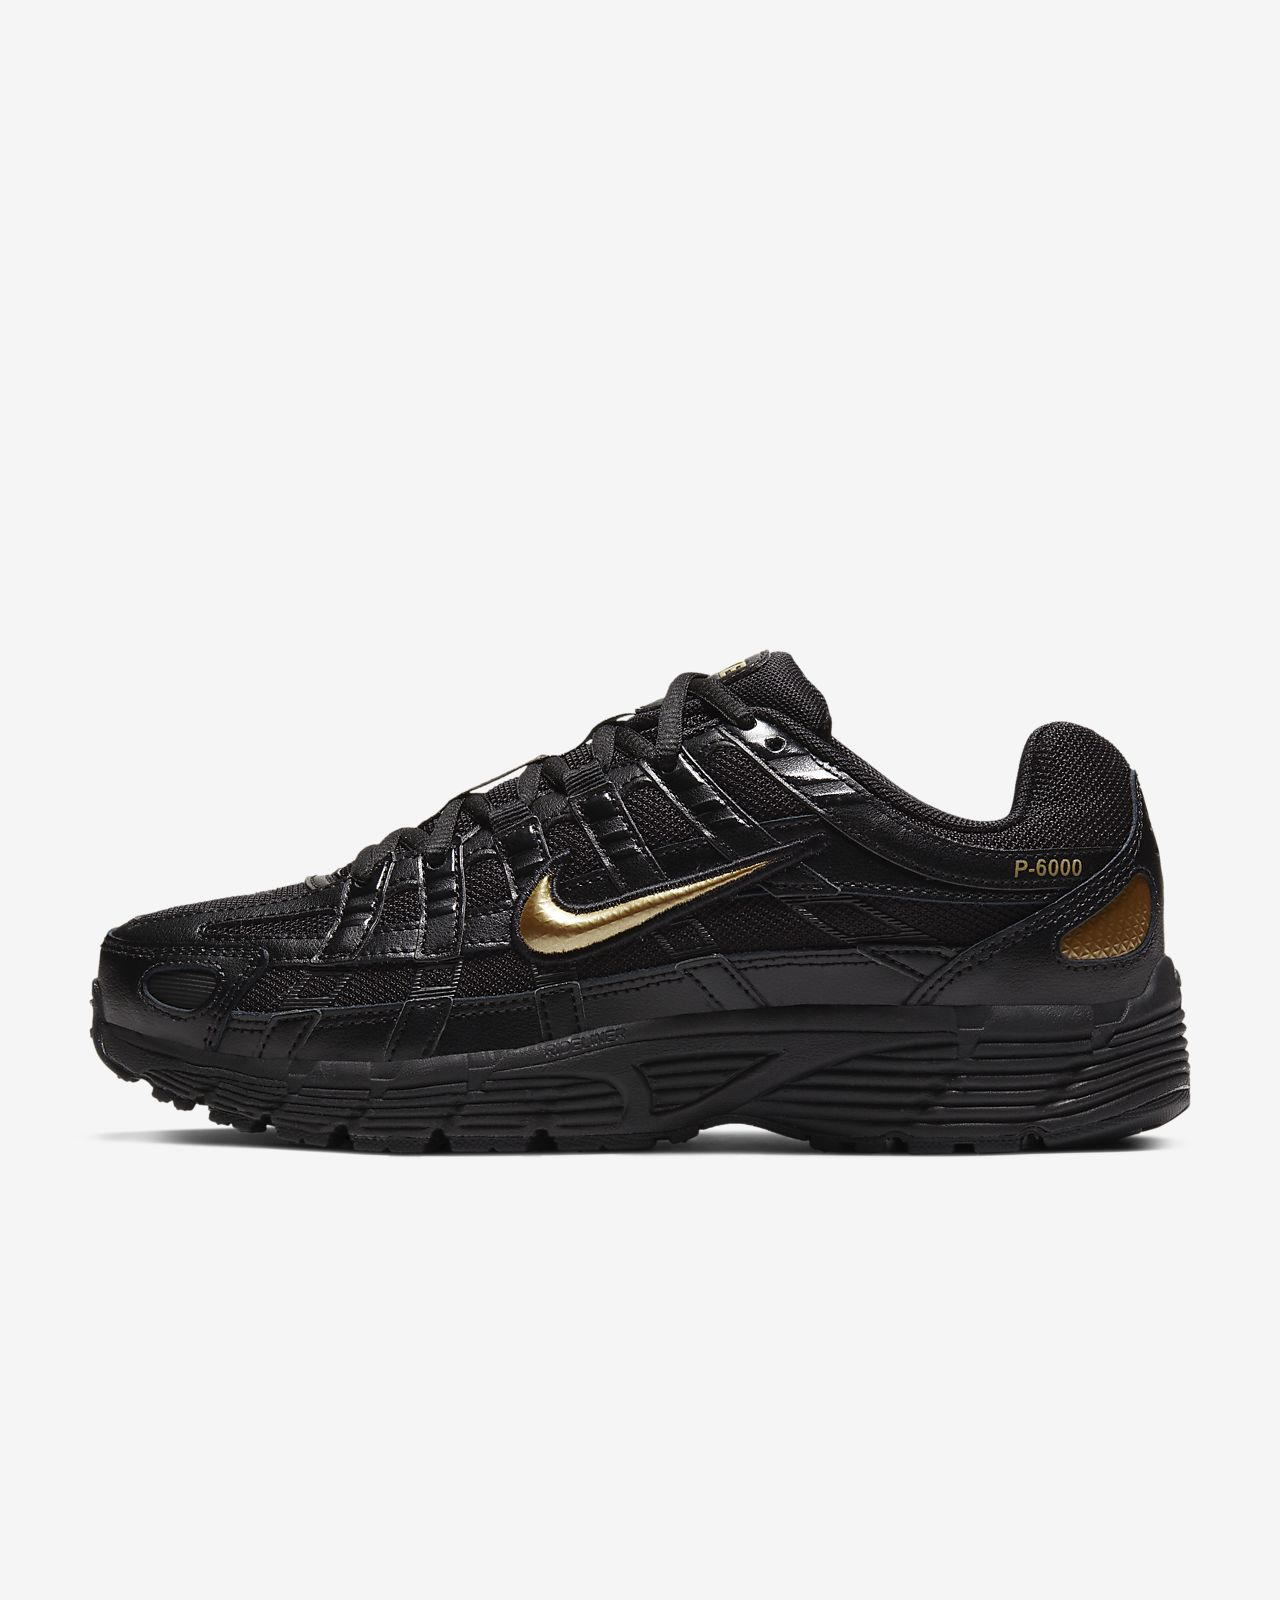 Chaussure Nike P 6000 Essential pour Femme